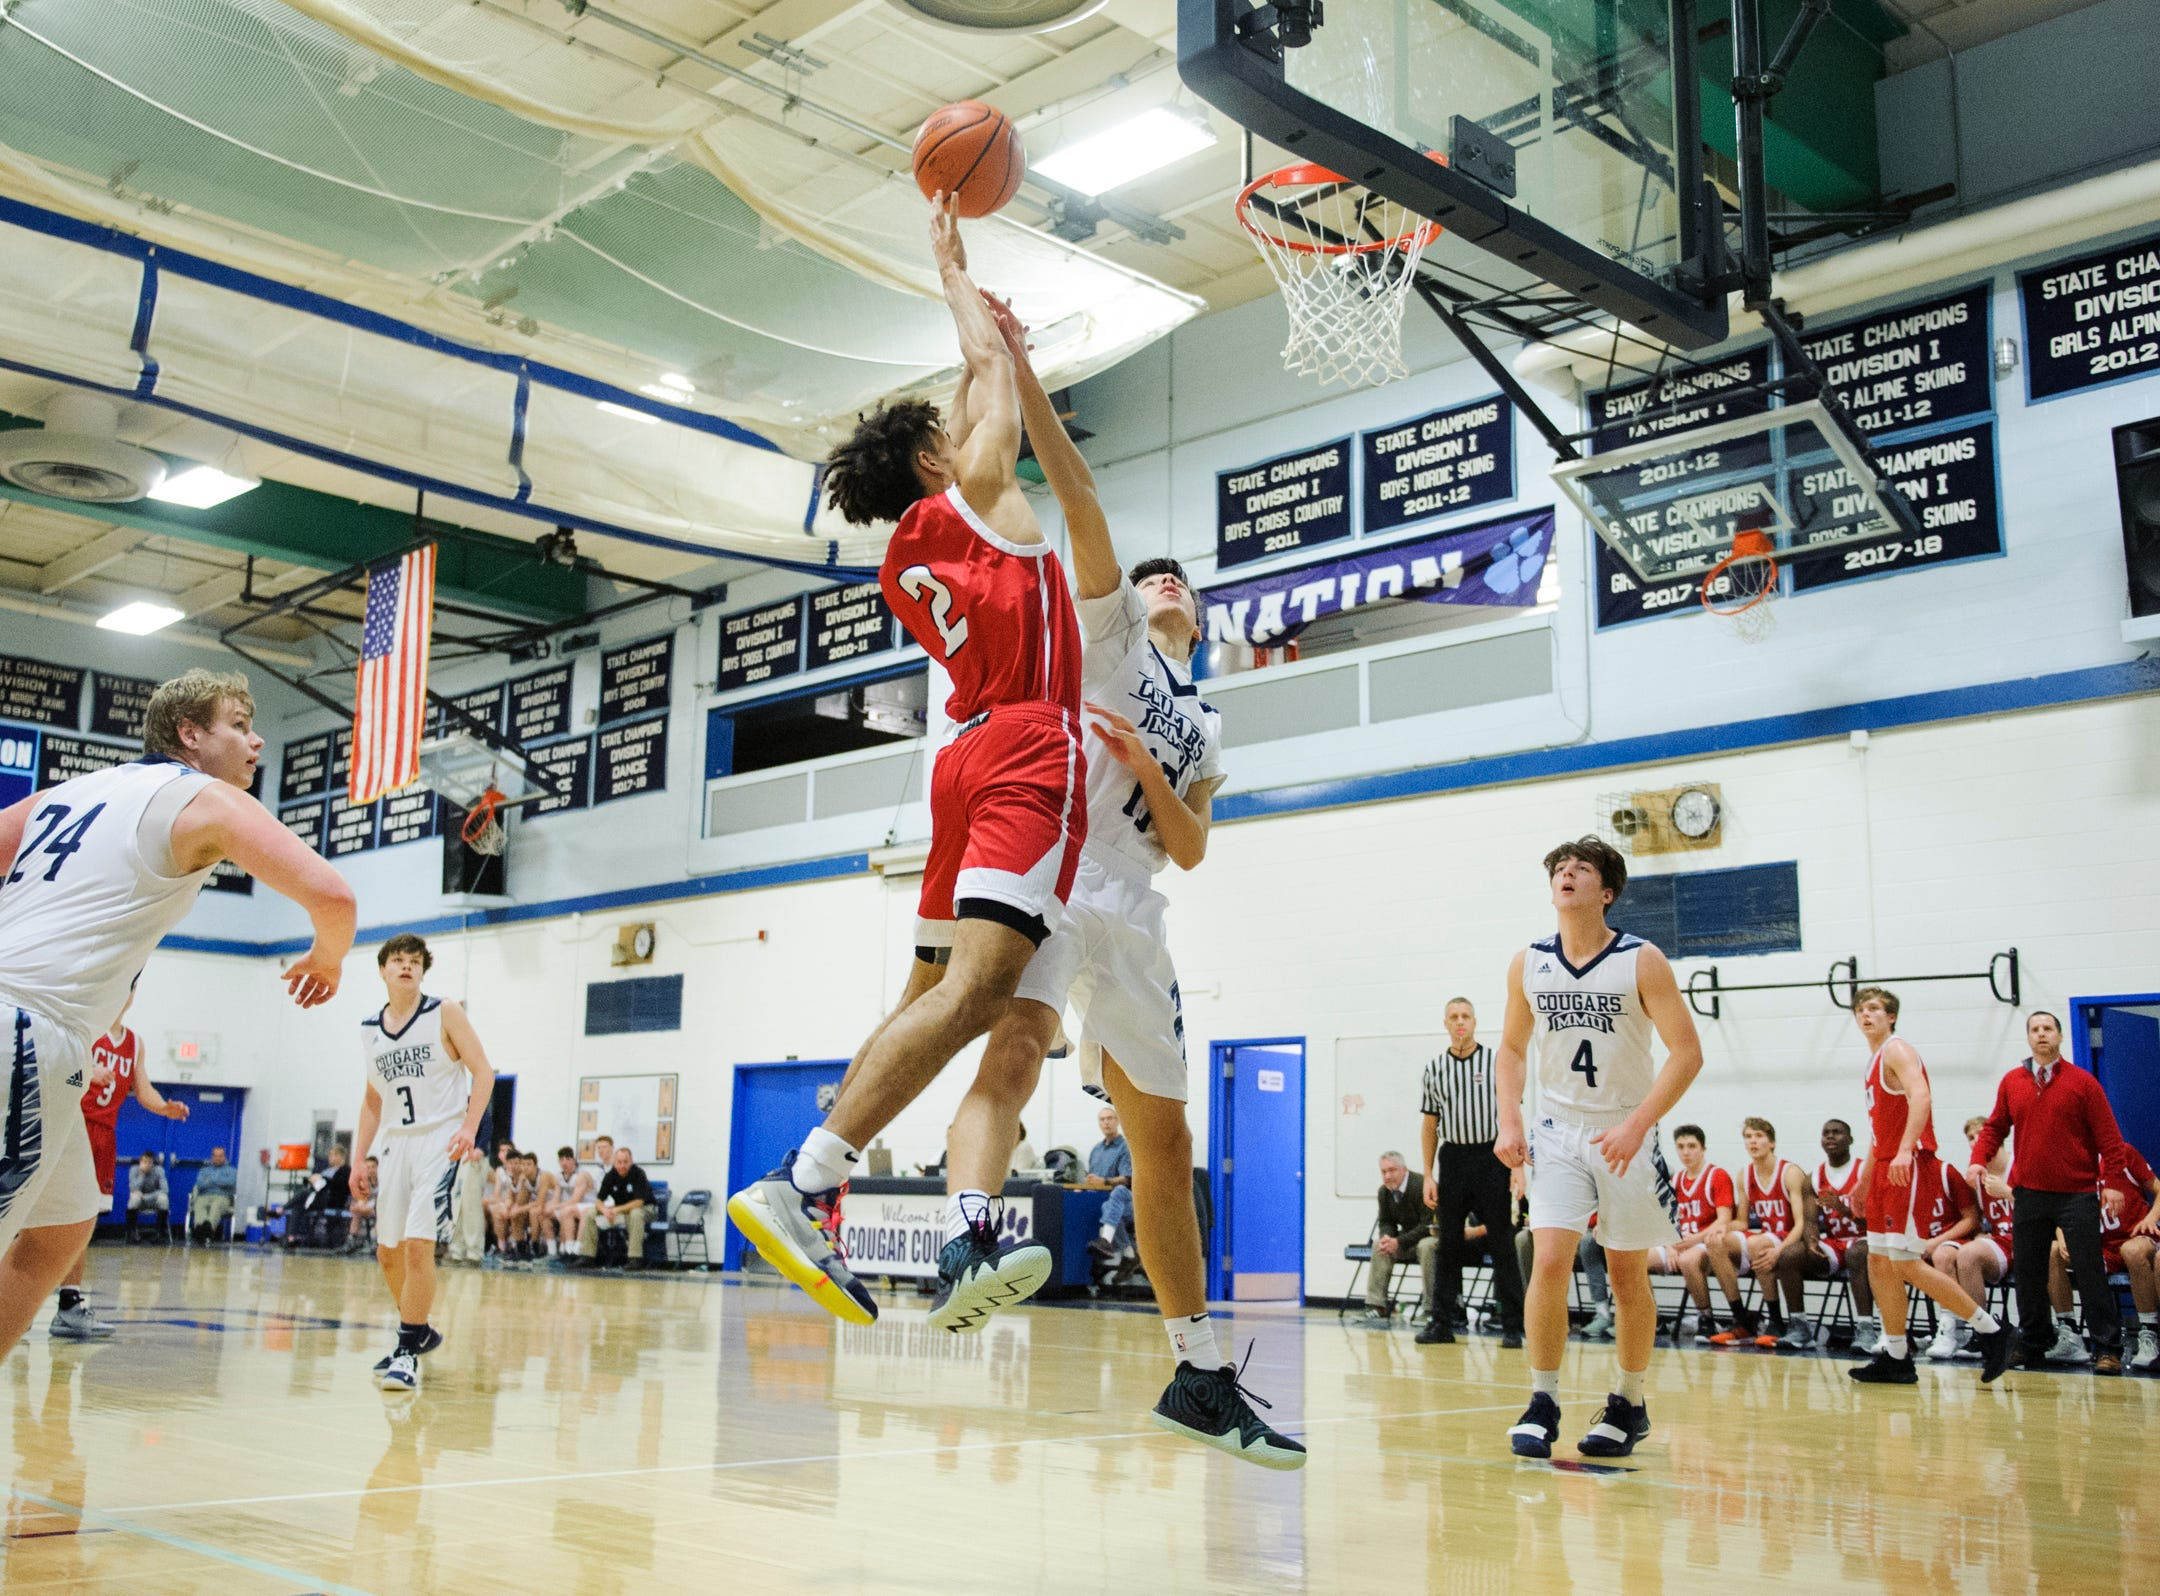 CVU's Jason West (2) leaps for a lay up over MMU's Becket Hill (13) during the boys basketball game between the Champlain Valley Union Redhawks and the Mount Mansfield Cougars at MMU High School on Tuesday night January 22, 2019 in Jericho.